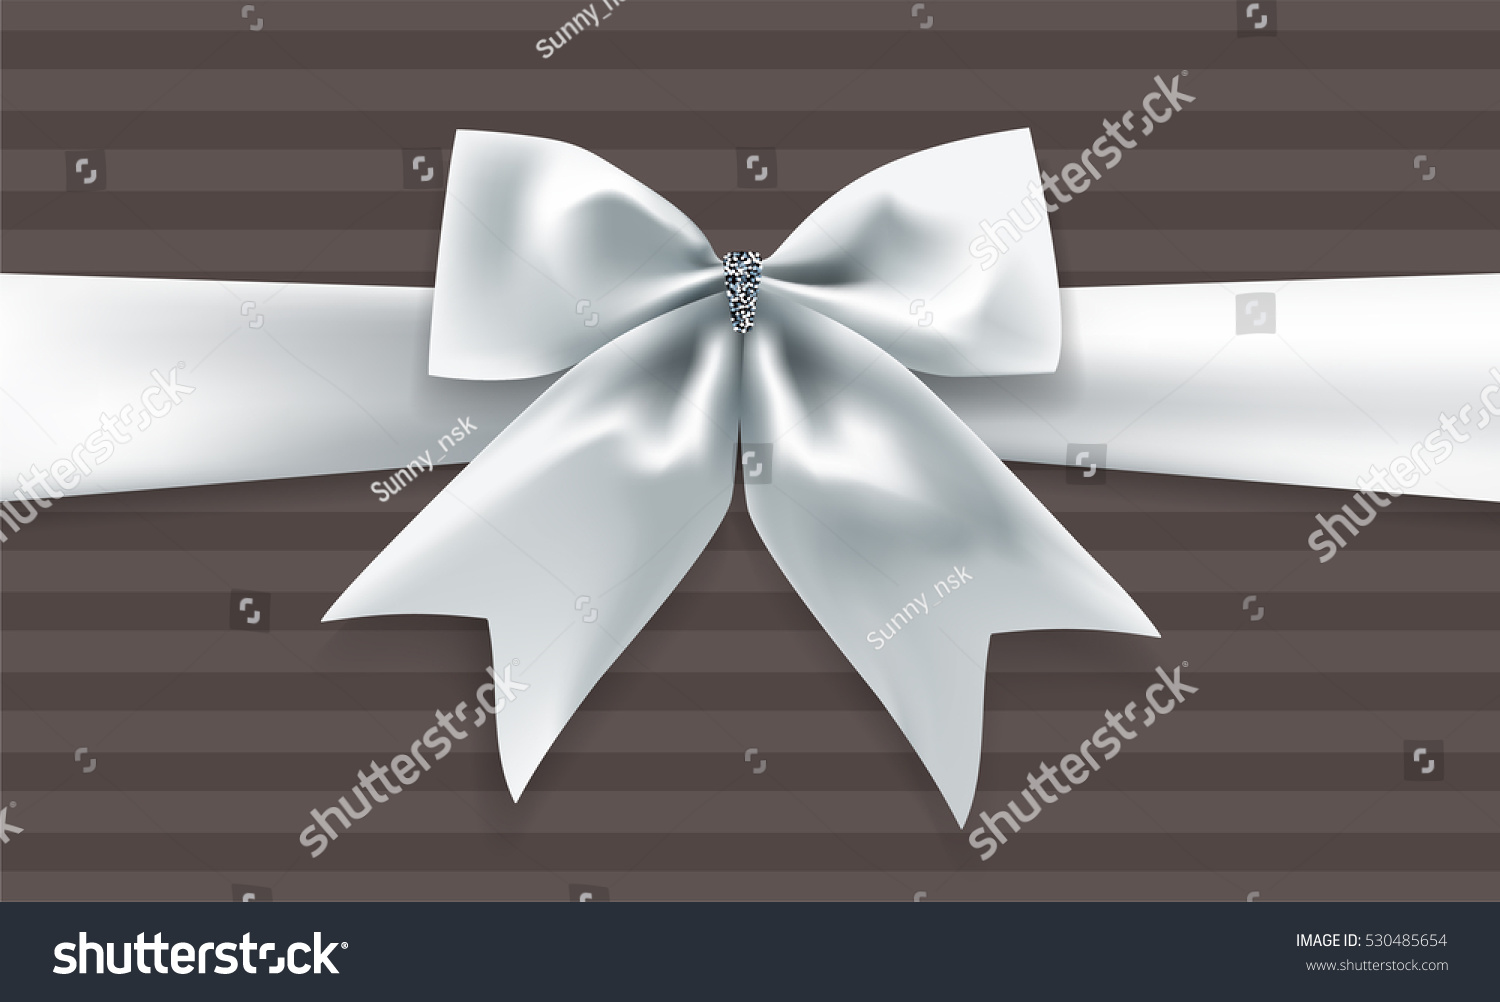 Red gift bows border with clipping path for easy background removing - Beautiful Silver Bow With Ribbon And Transparent Shadow On Brown Striped Background Vector Illustration Decorative Element